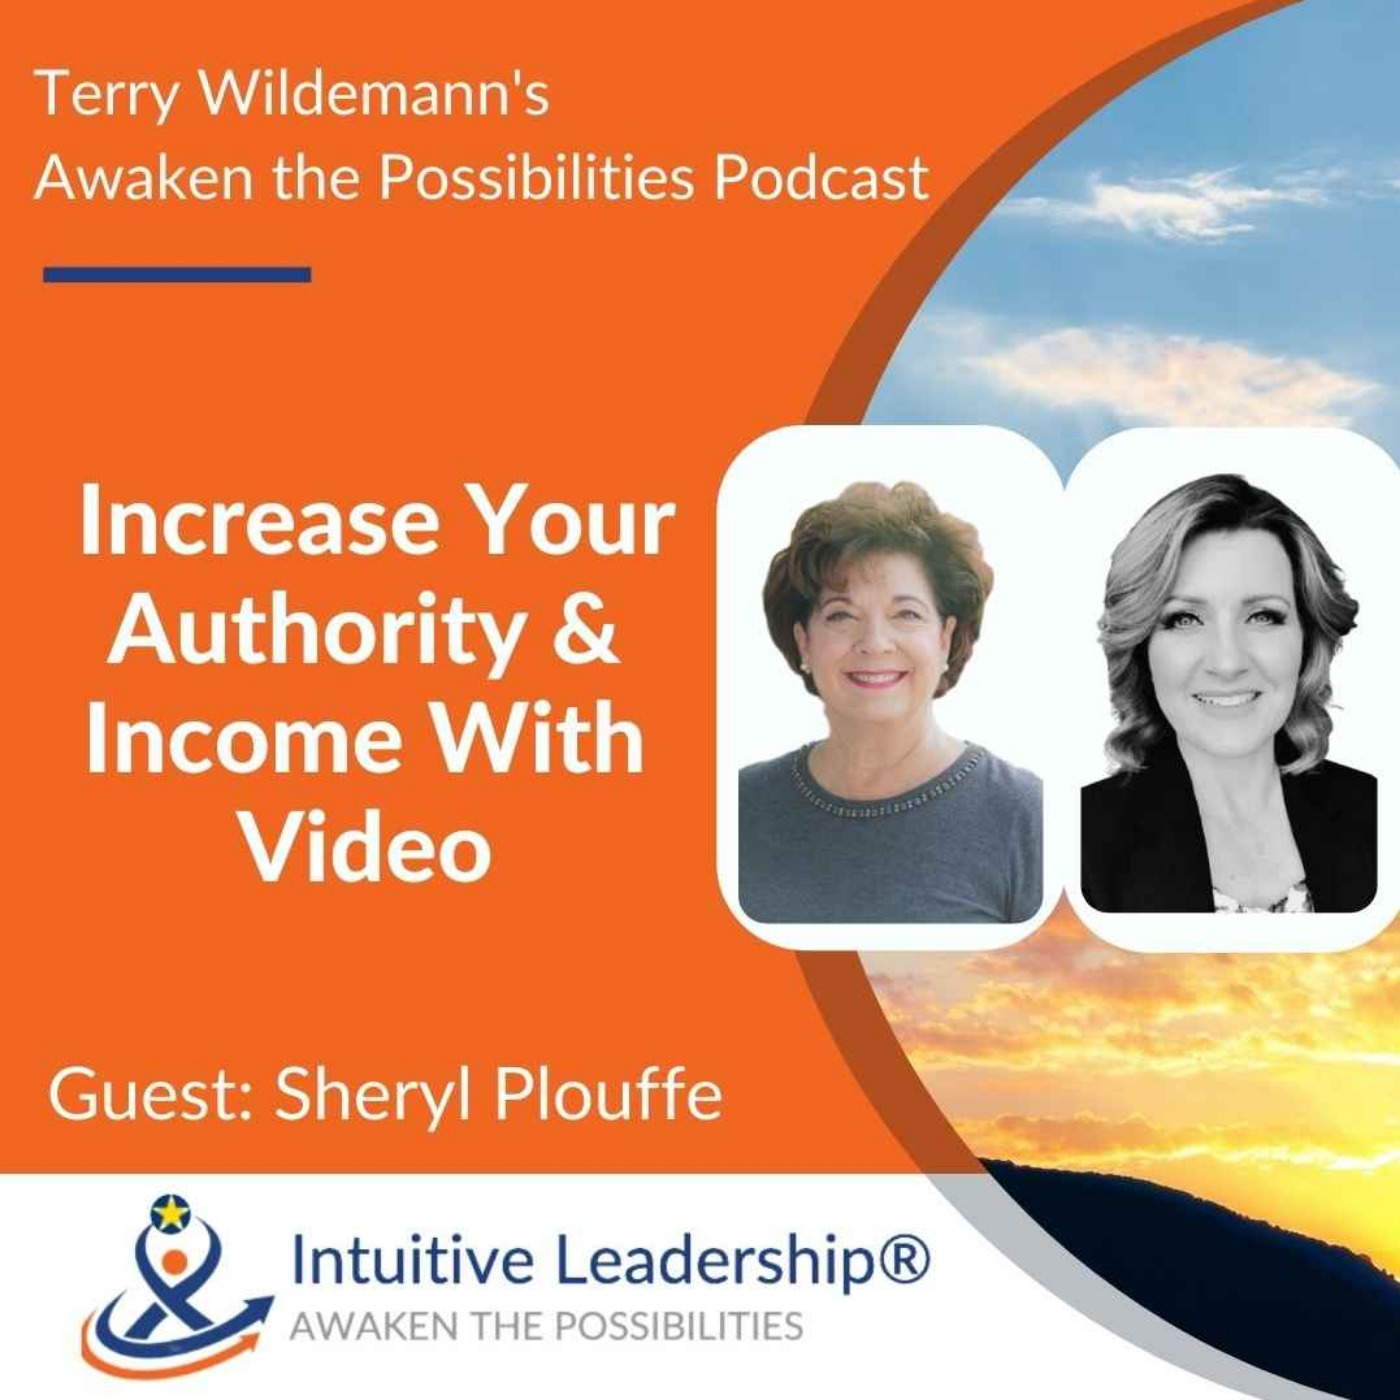 Increase Your Authority & Income With Video